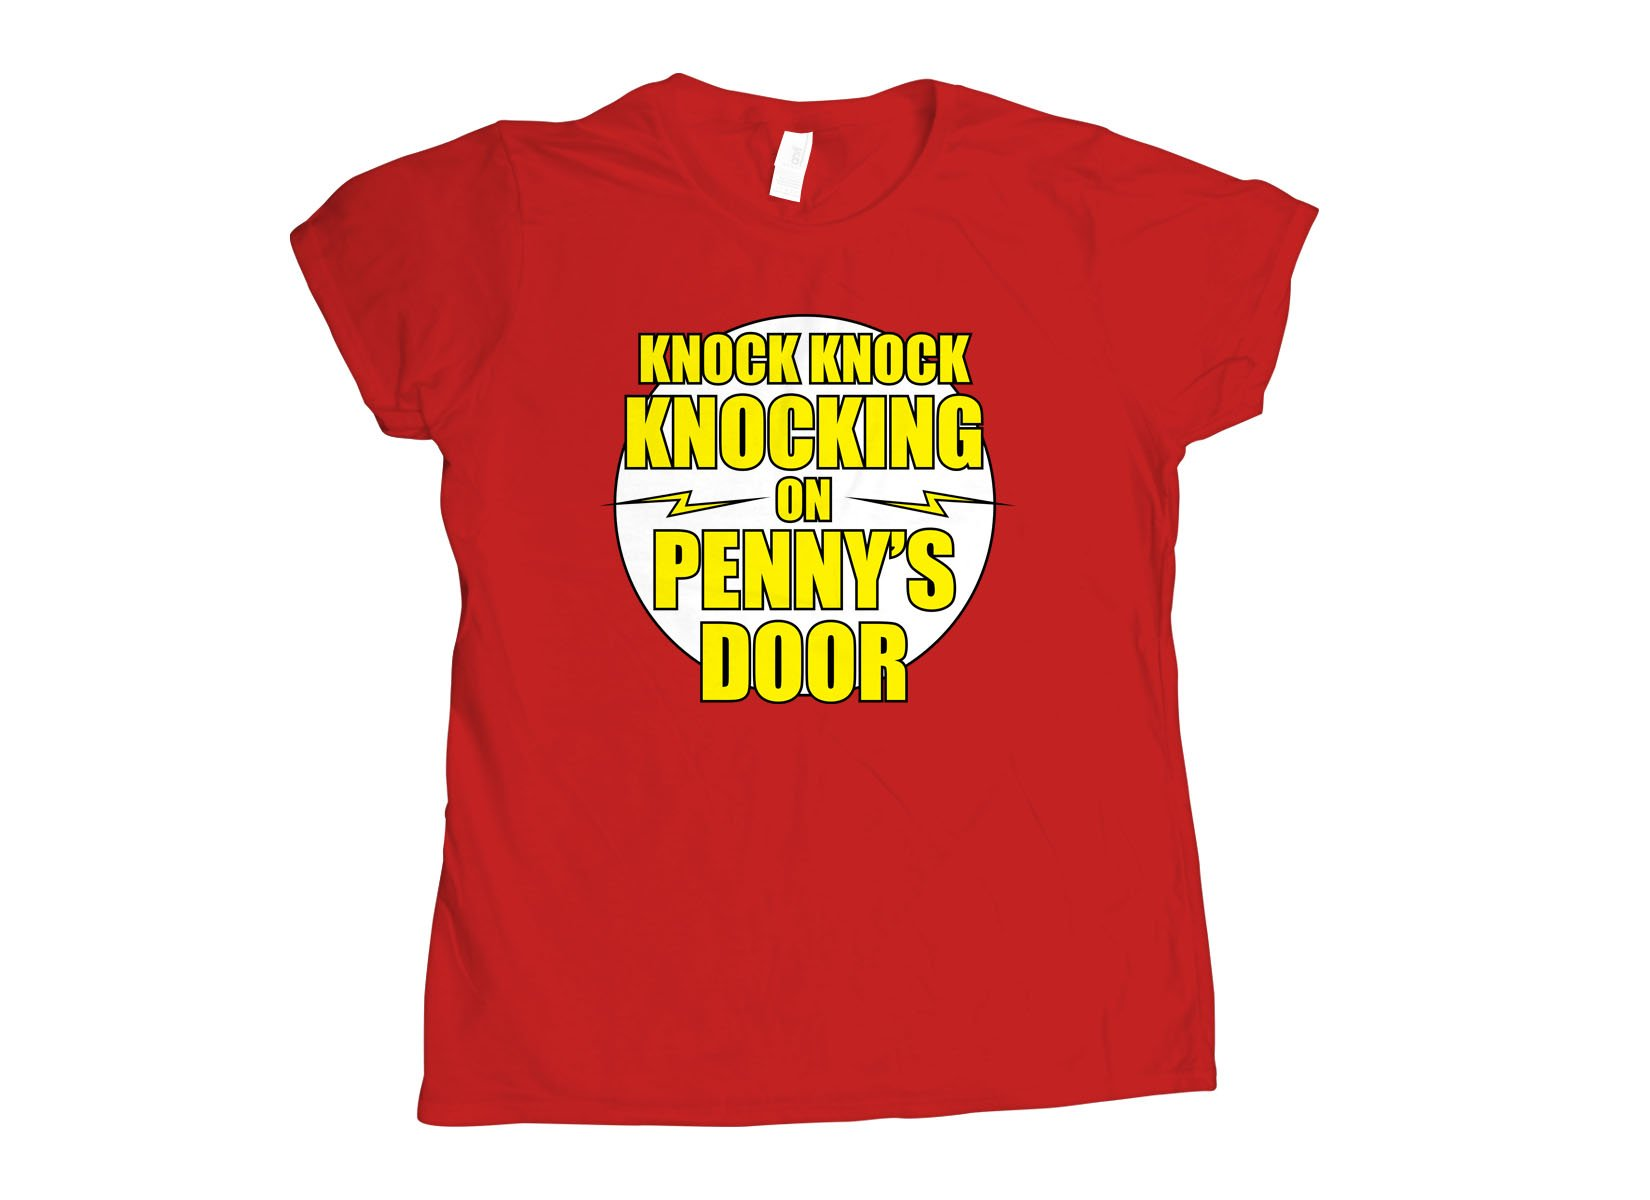 Knock Knock Knocking On Penny's Door on Womens T-Shirt